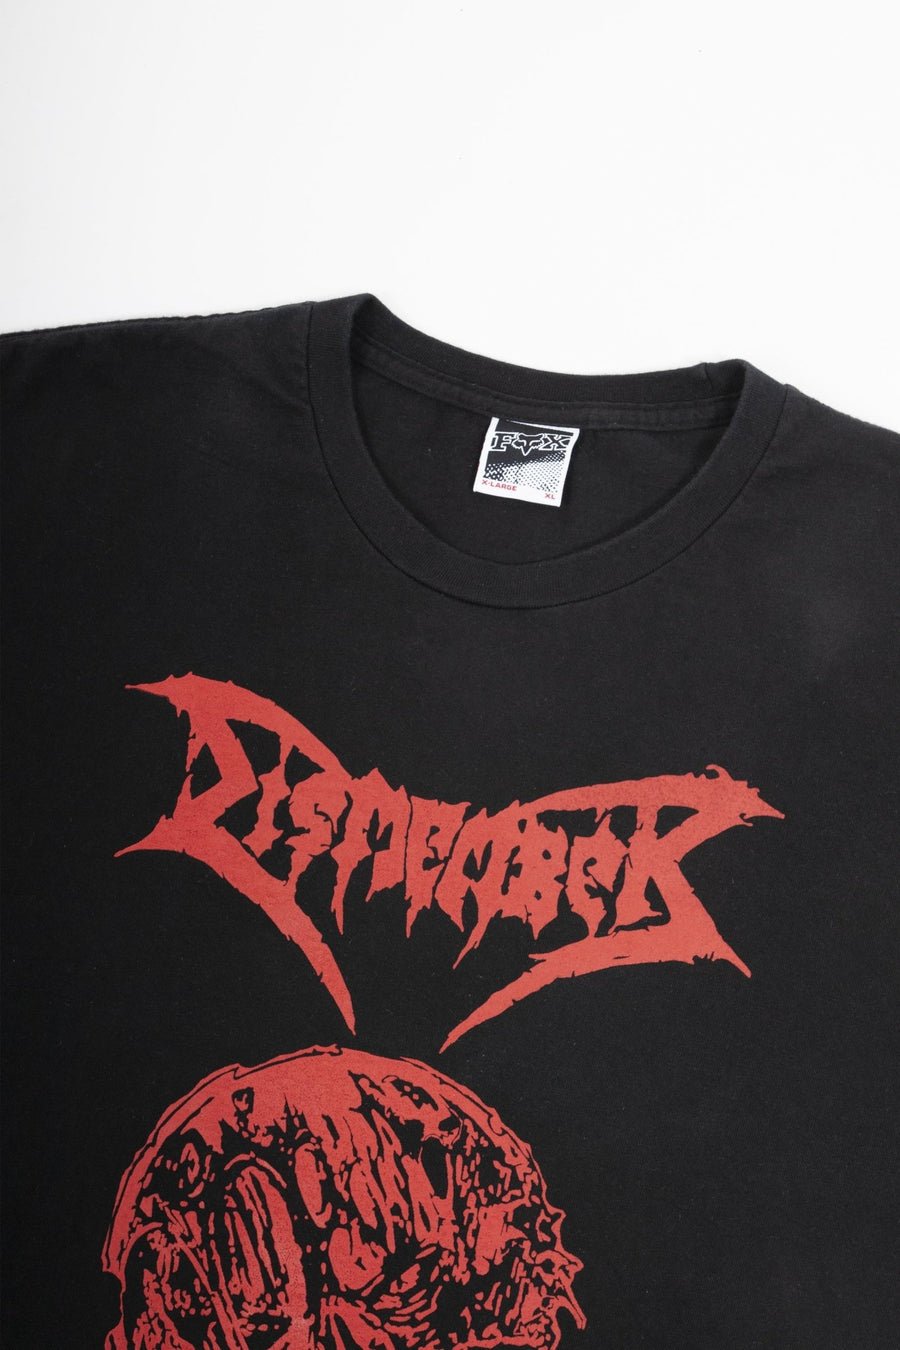 T-shirt Dismember - WASTED PARIS